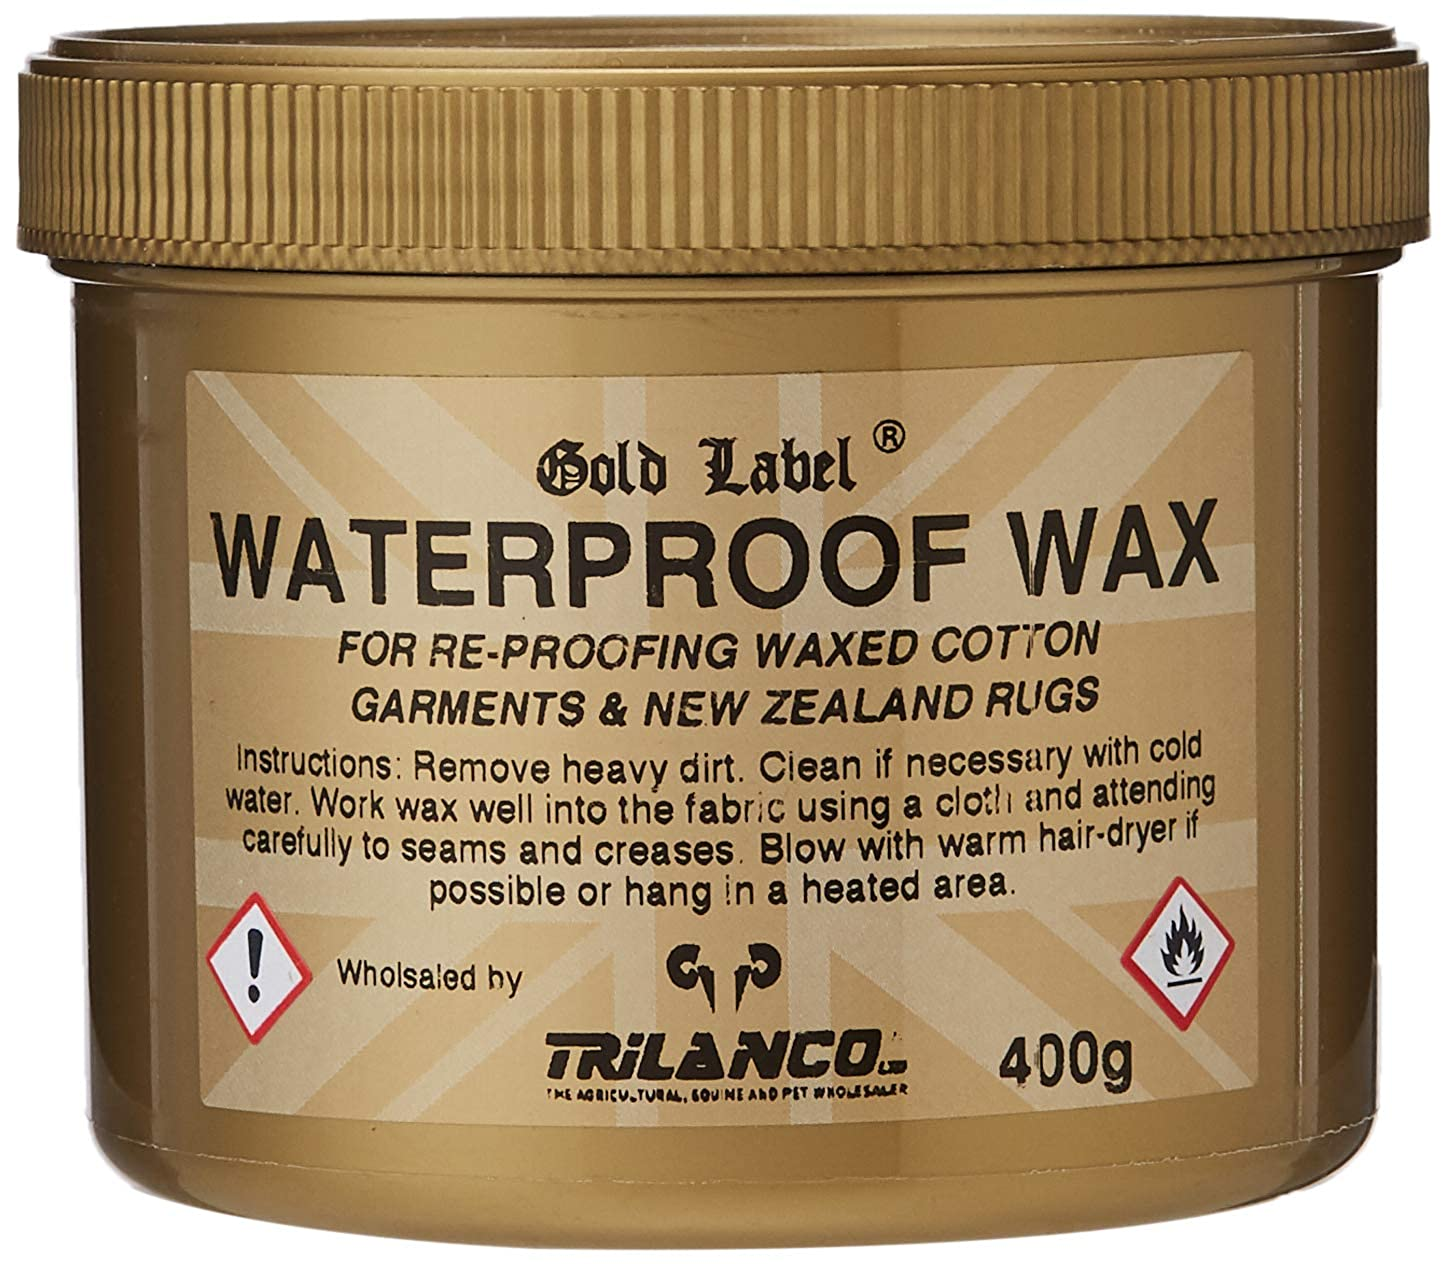 e0b8d2b2ccf3 Gold Label Waterproof Wax for Re-Proofing Wax Cotton Clothing   Horse  Turnout Rugs 400g  Amazon.co.uk  Clothing